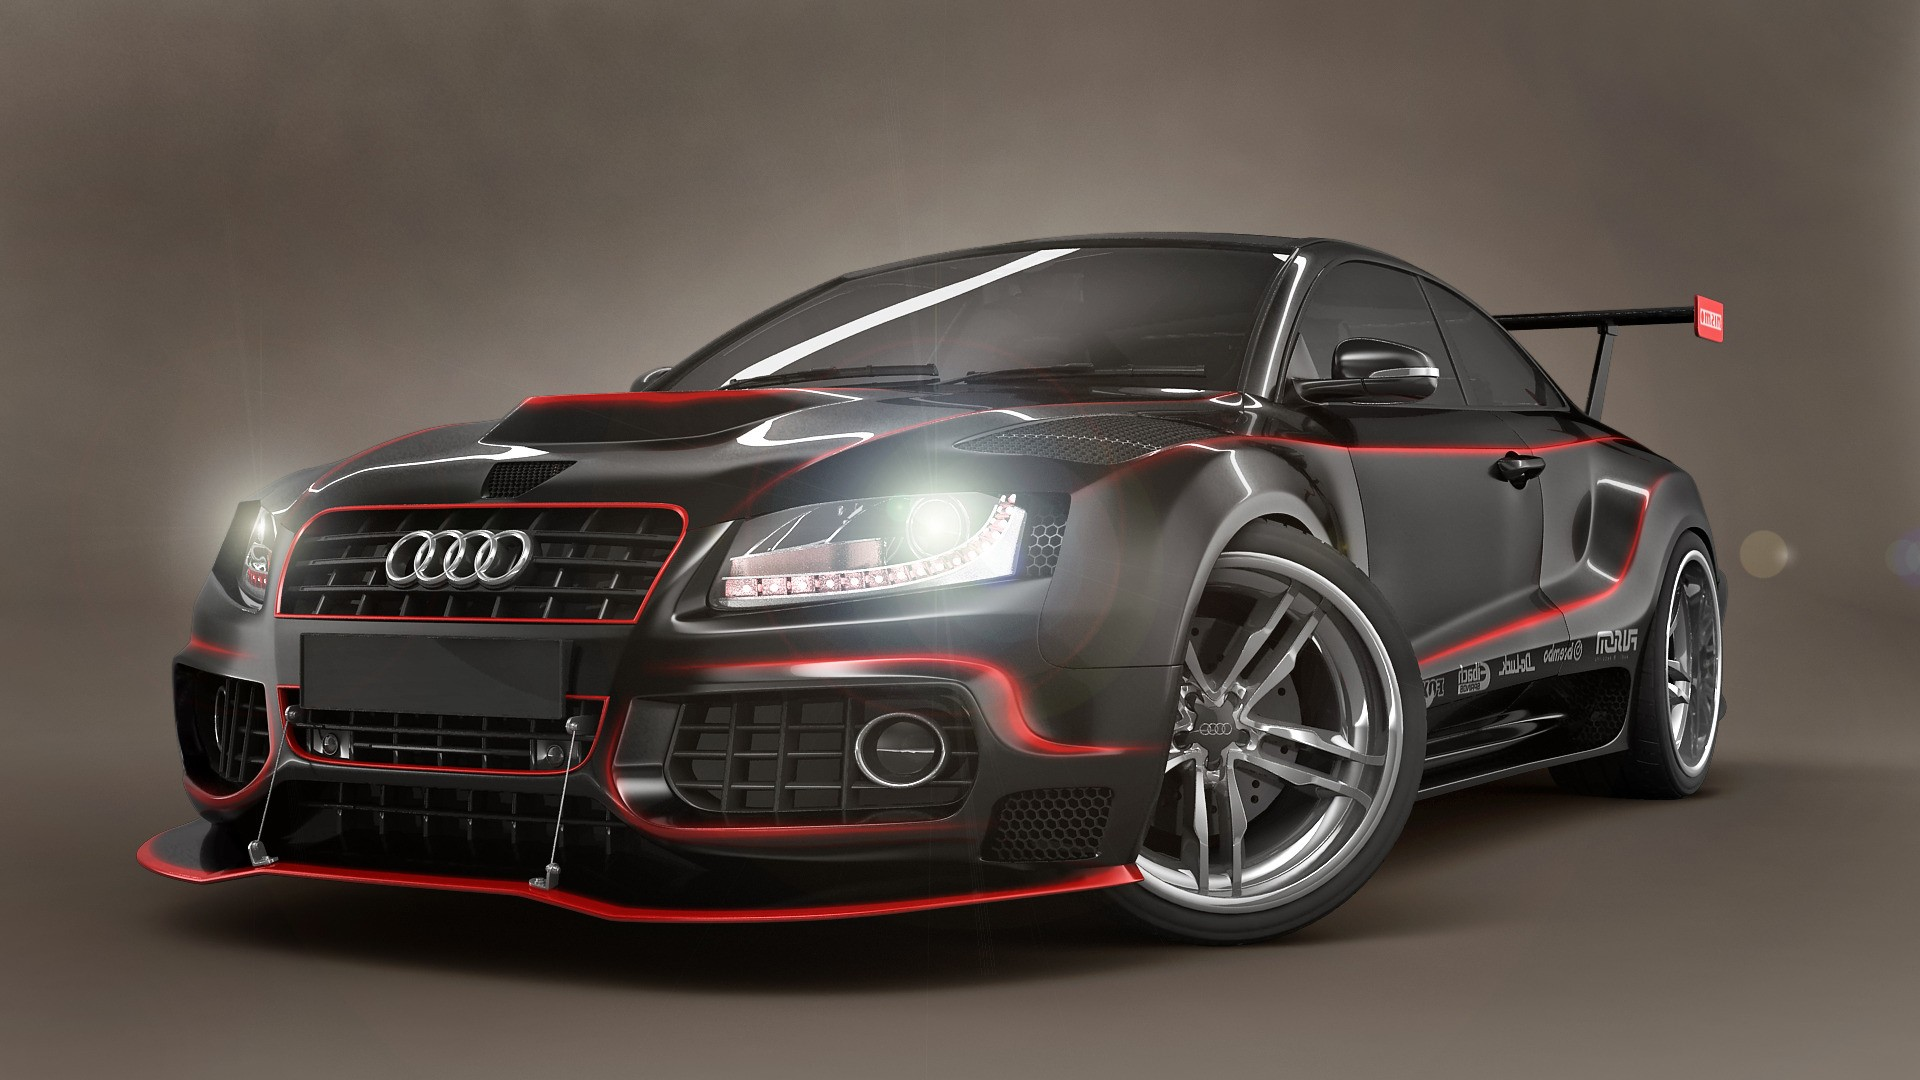 Free Download Wallpaper Car Voiture Sport Ecran Audi Driver